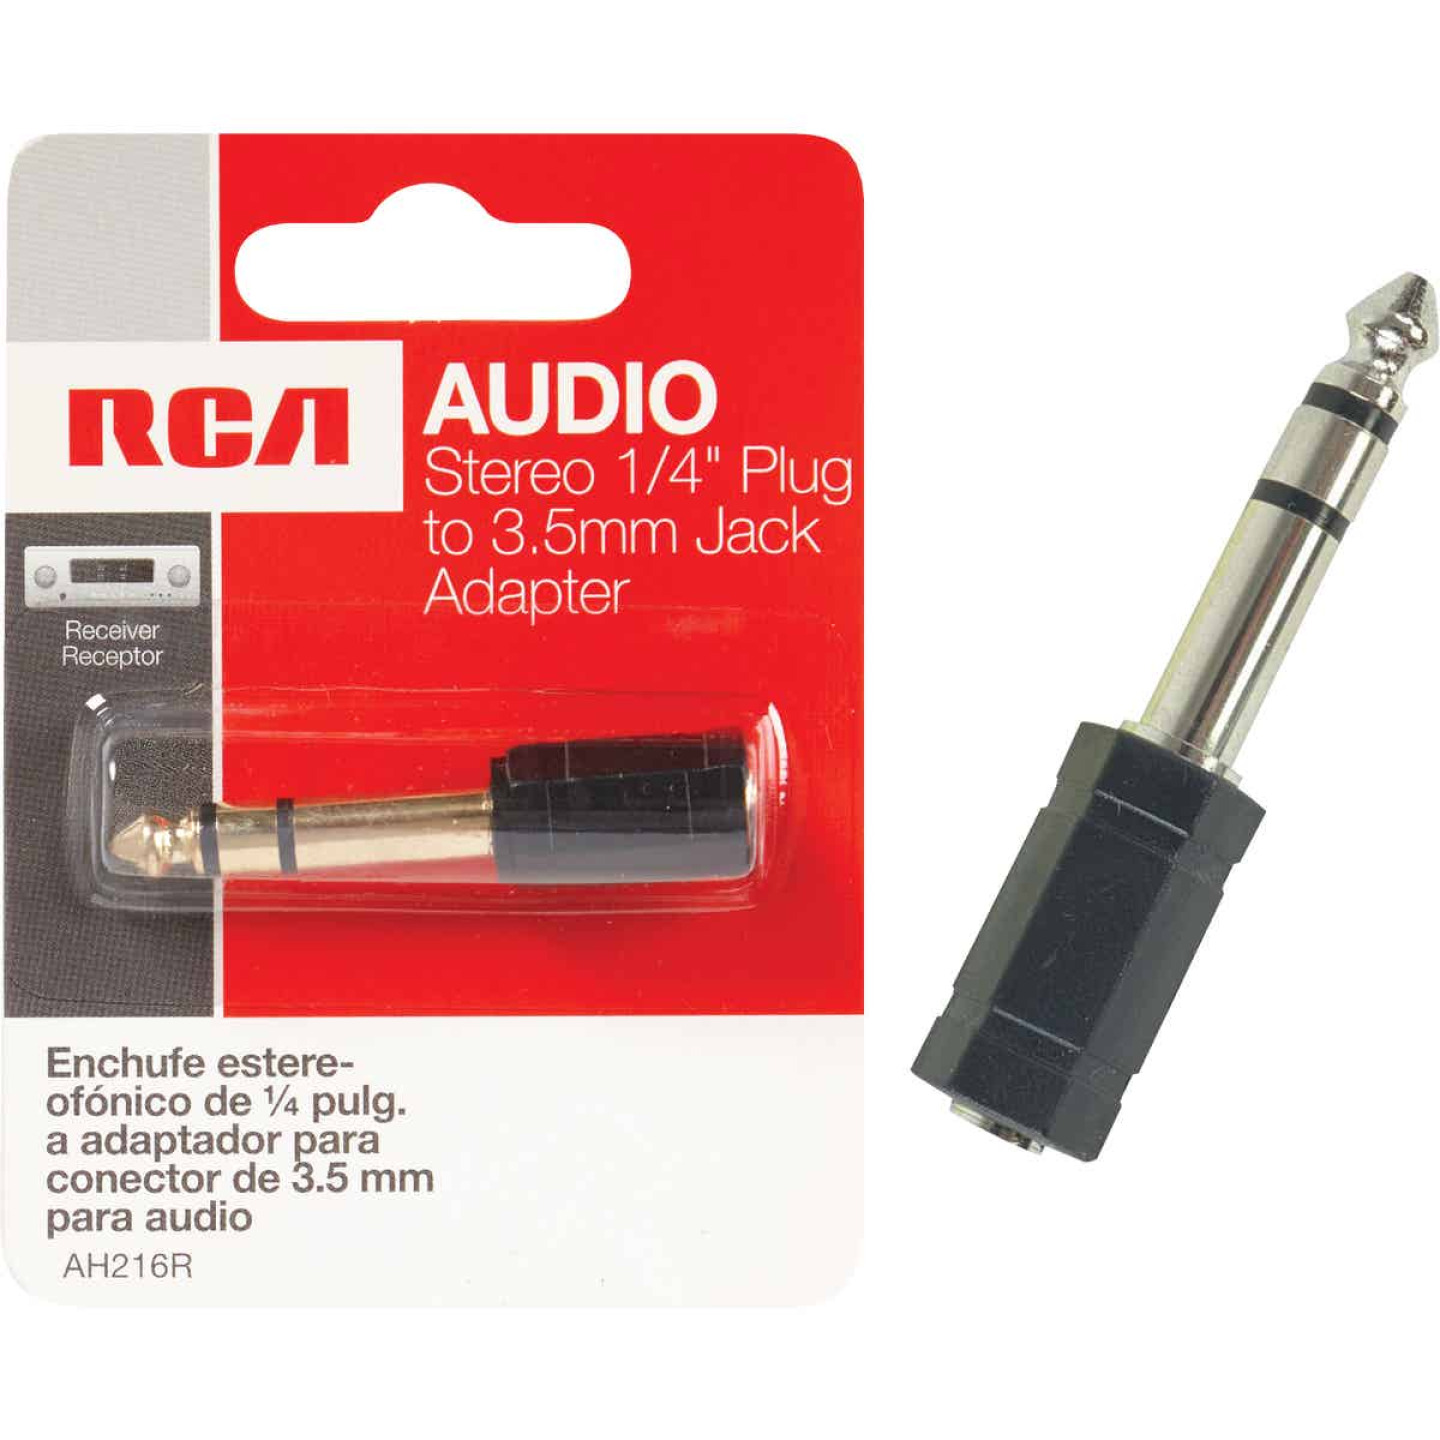 RCA 1/4 In. Plug to 3.5mm Jack Adapter Audio Adapter Image 1